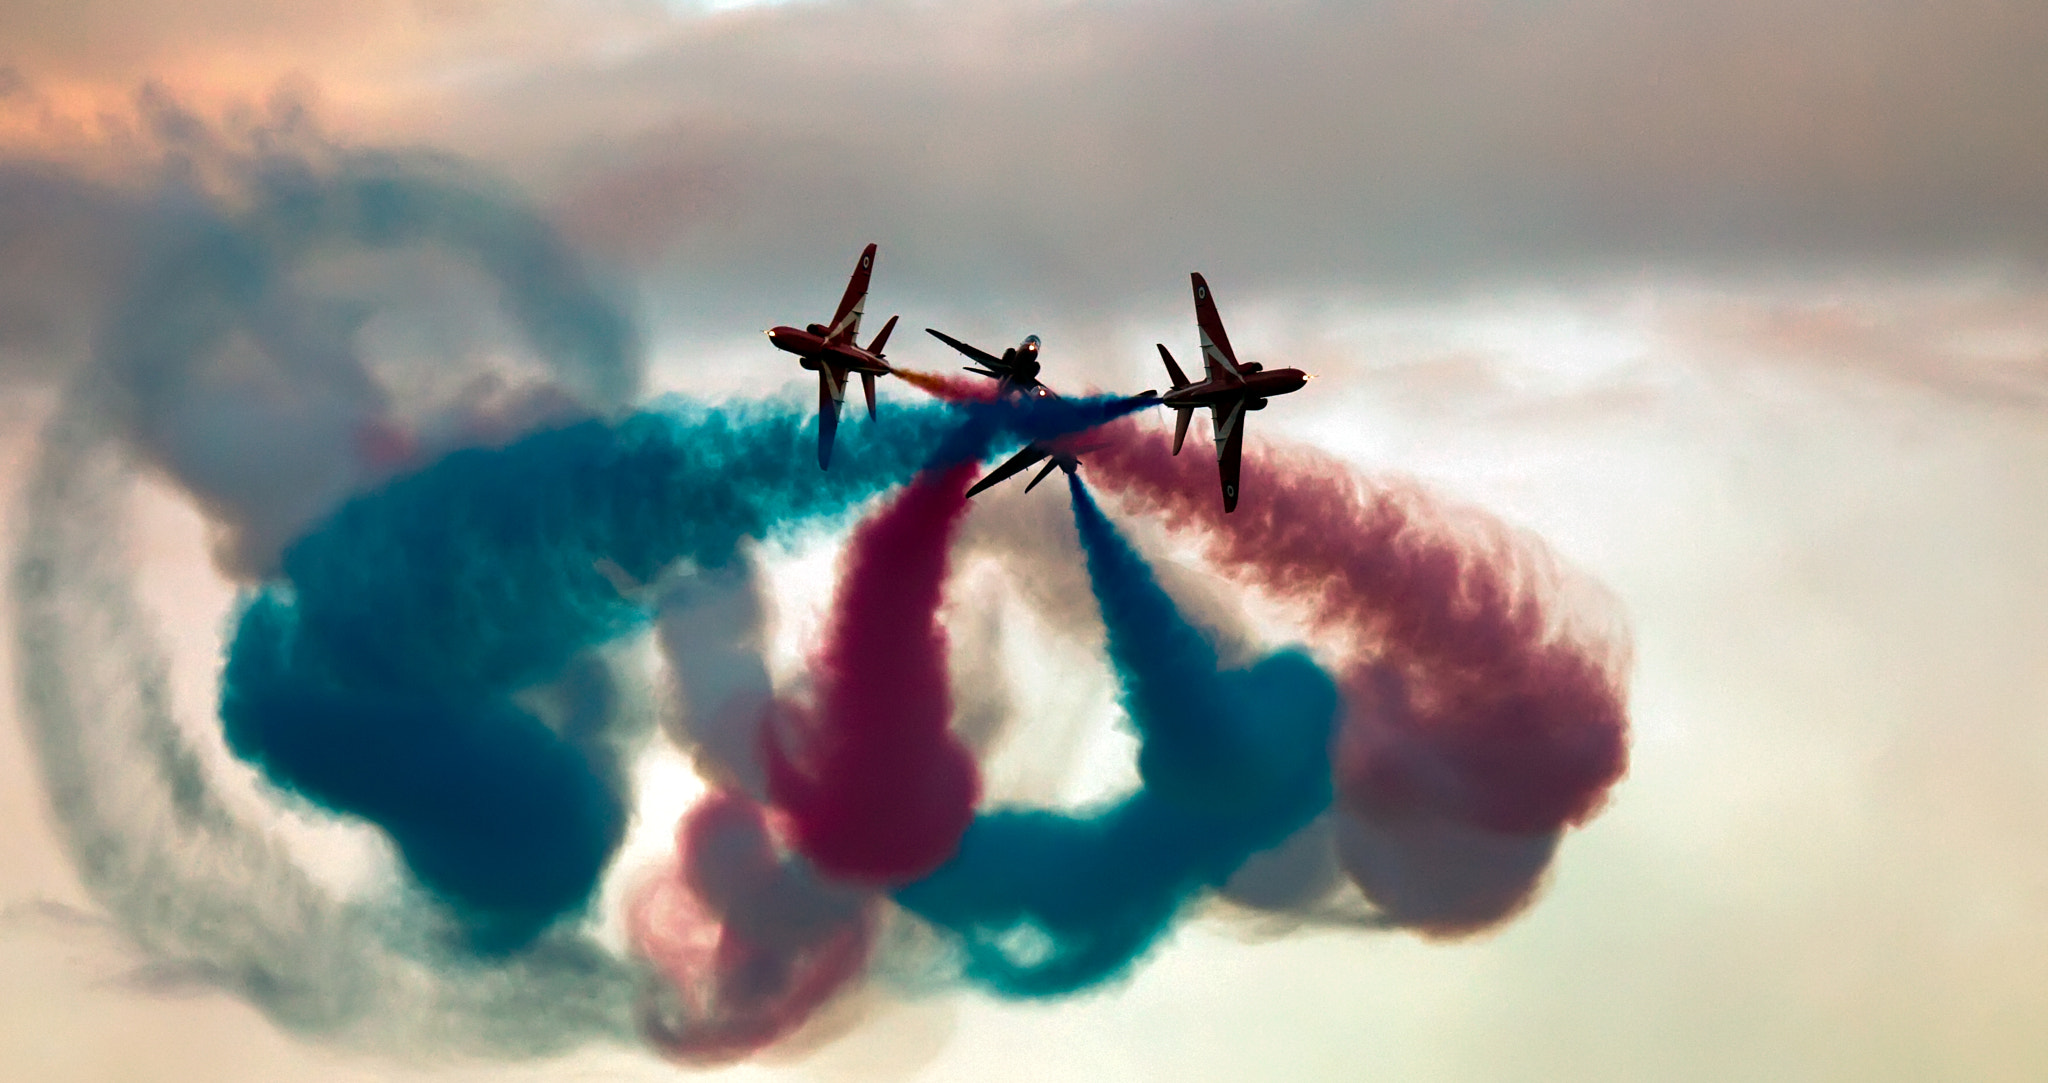 Photograph Red Arrows by Justin Bloom on 500px